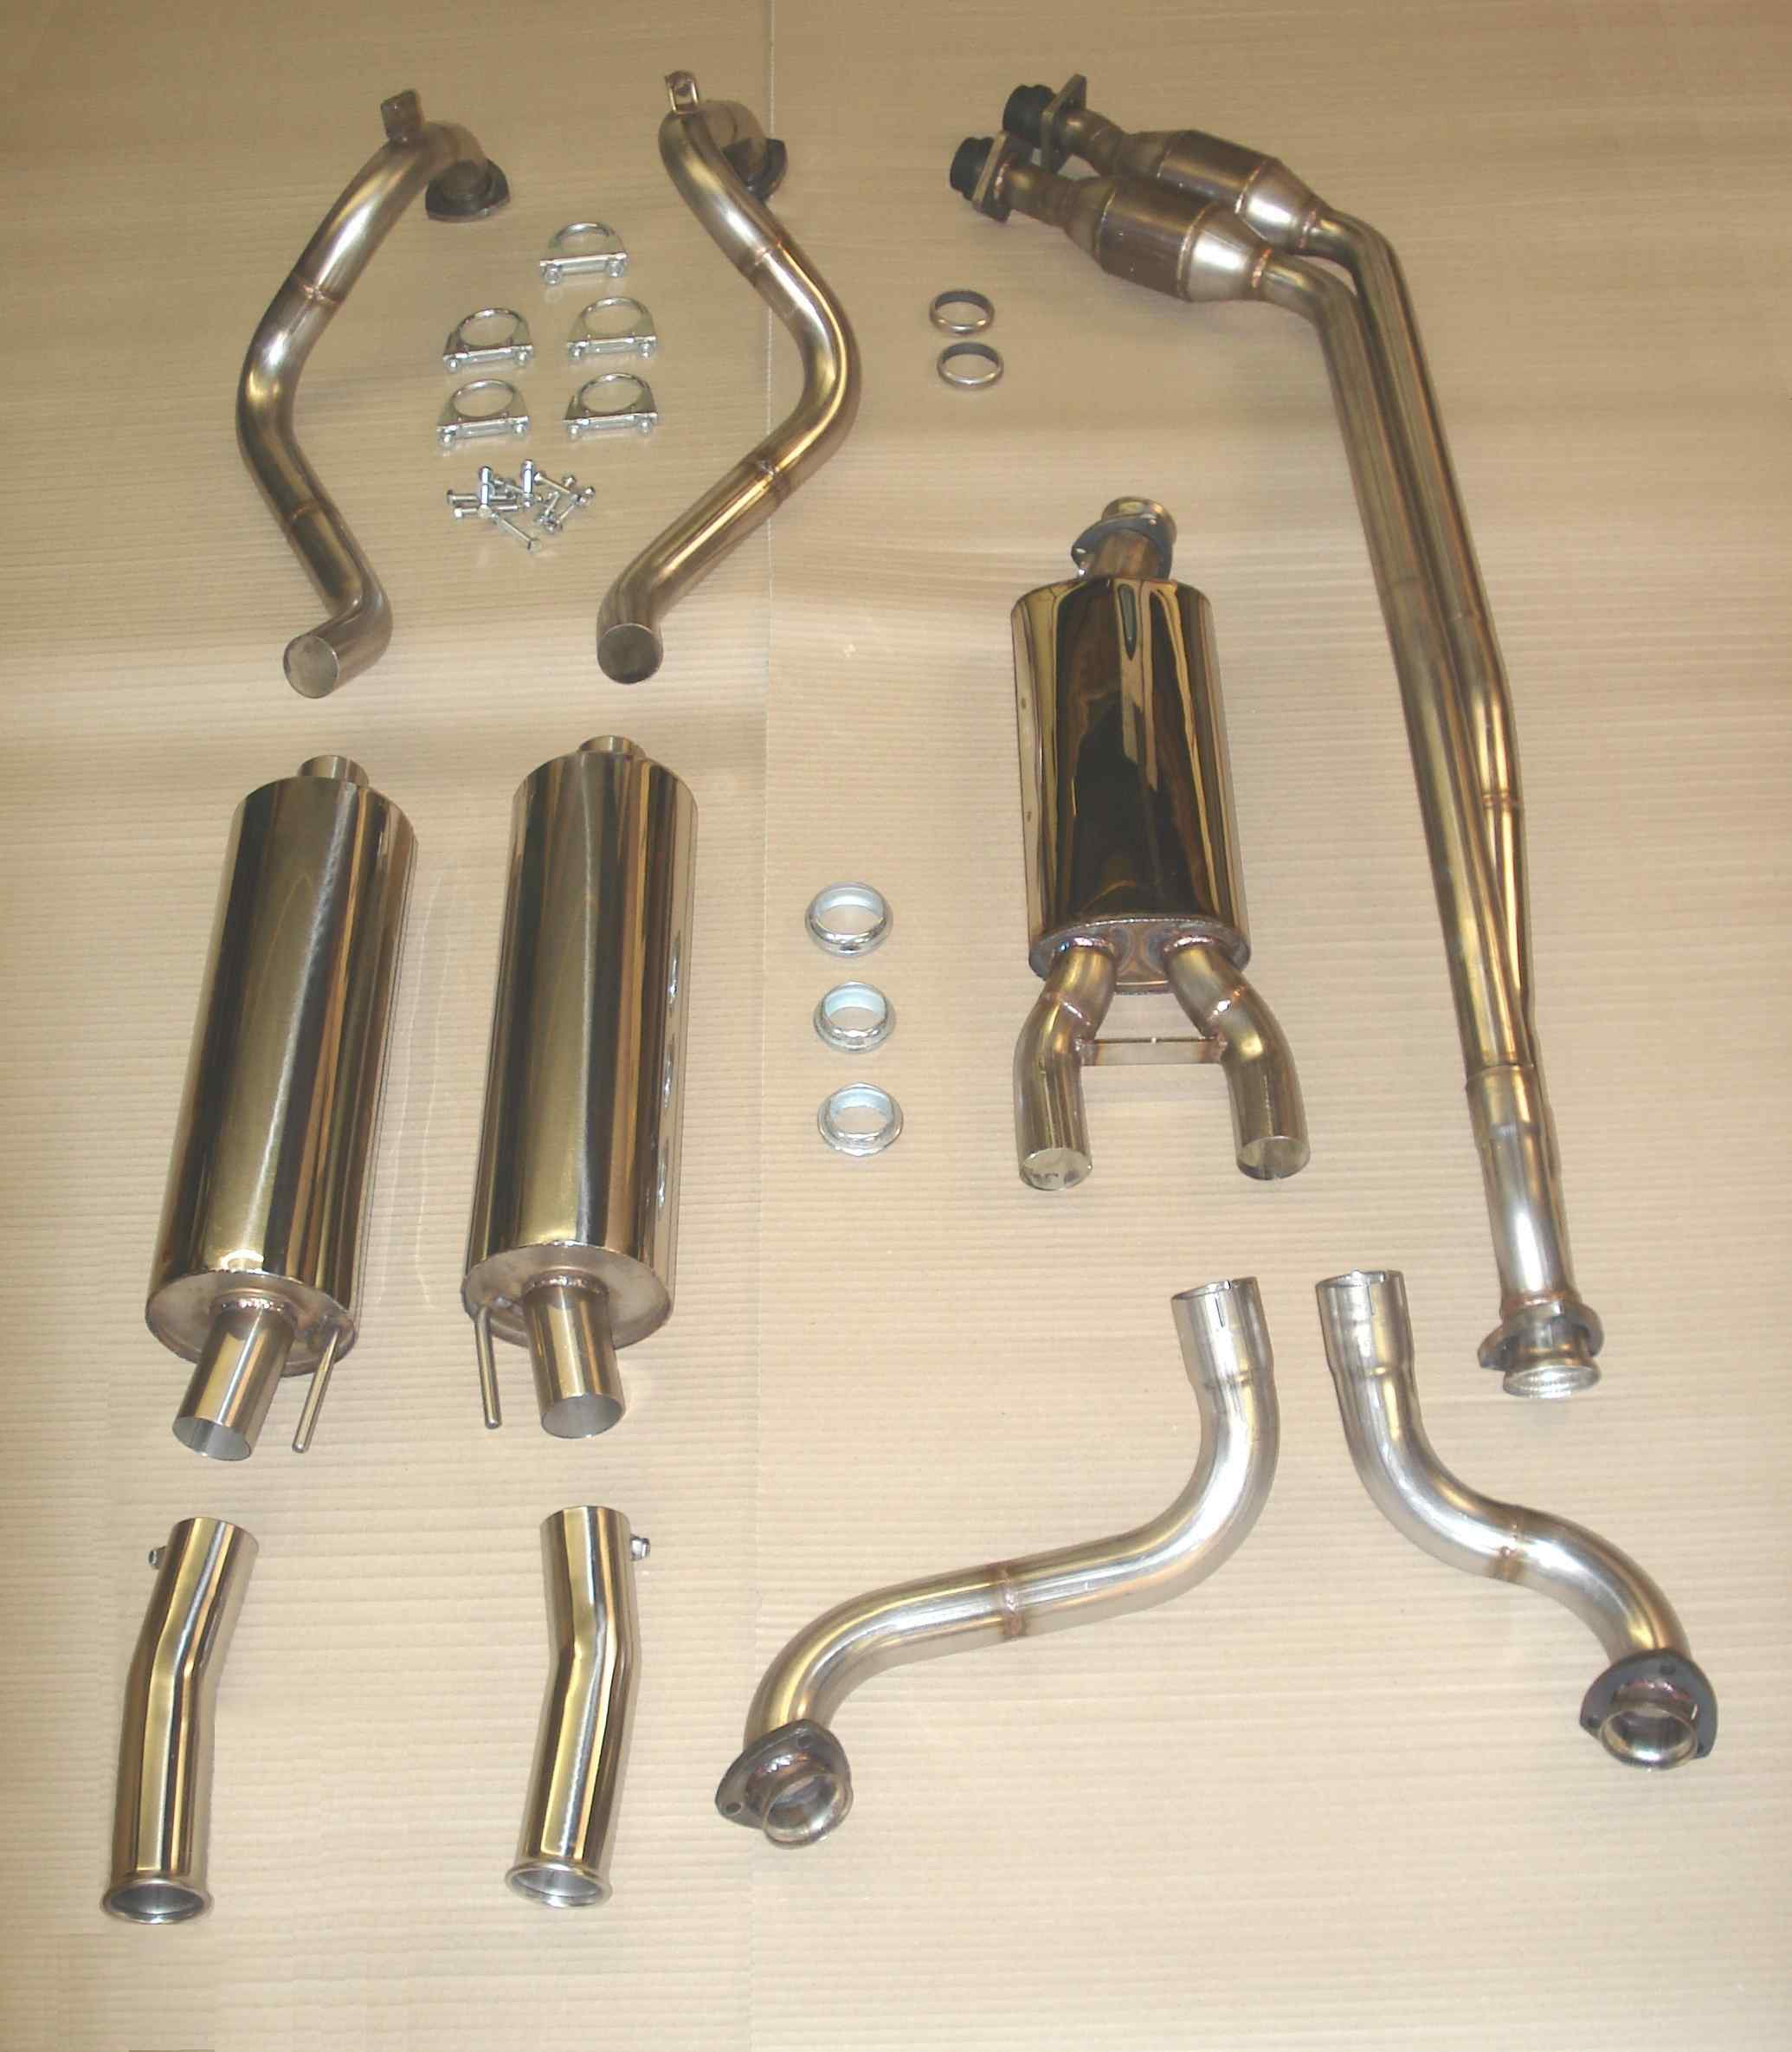 4.0 TT complete system with downpipe catalysts.